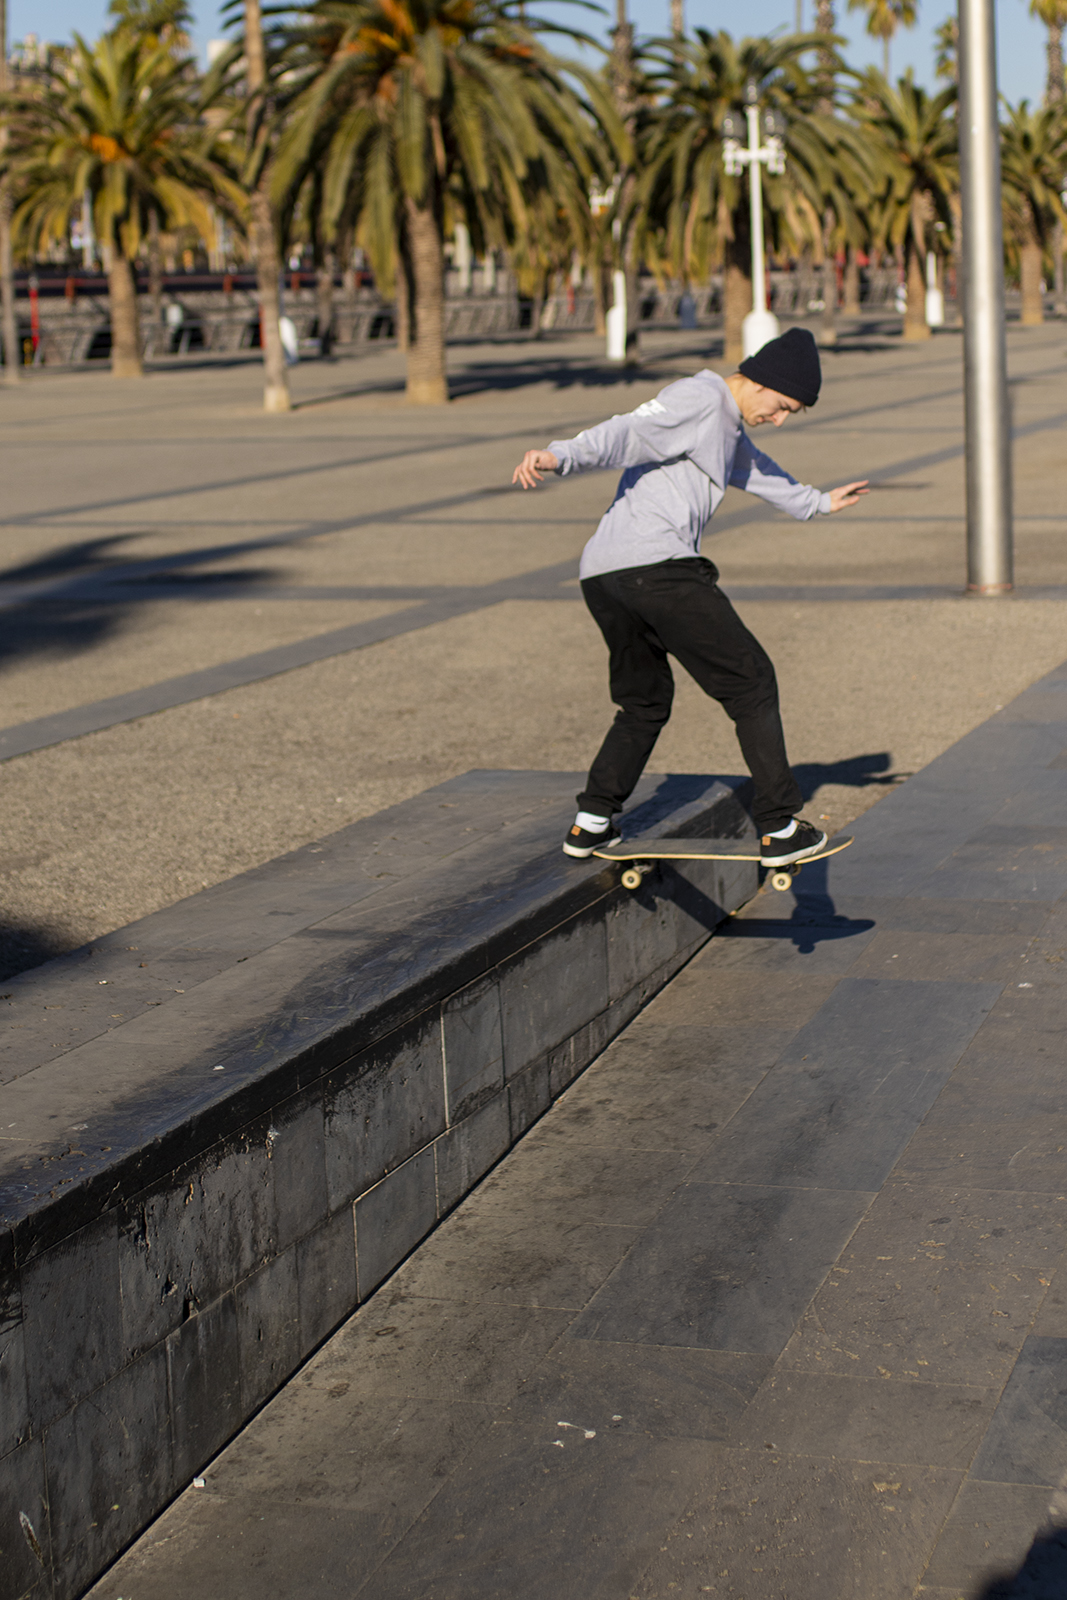 Backtail Bigspin - Barcelona